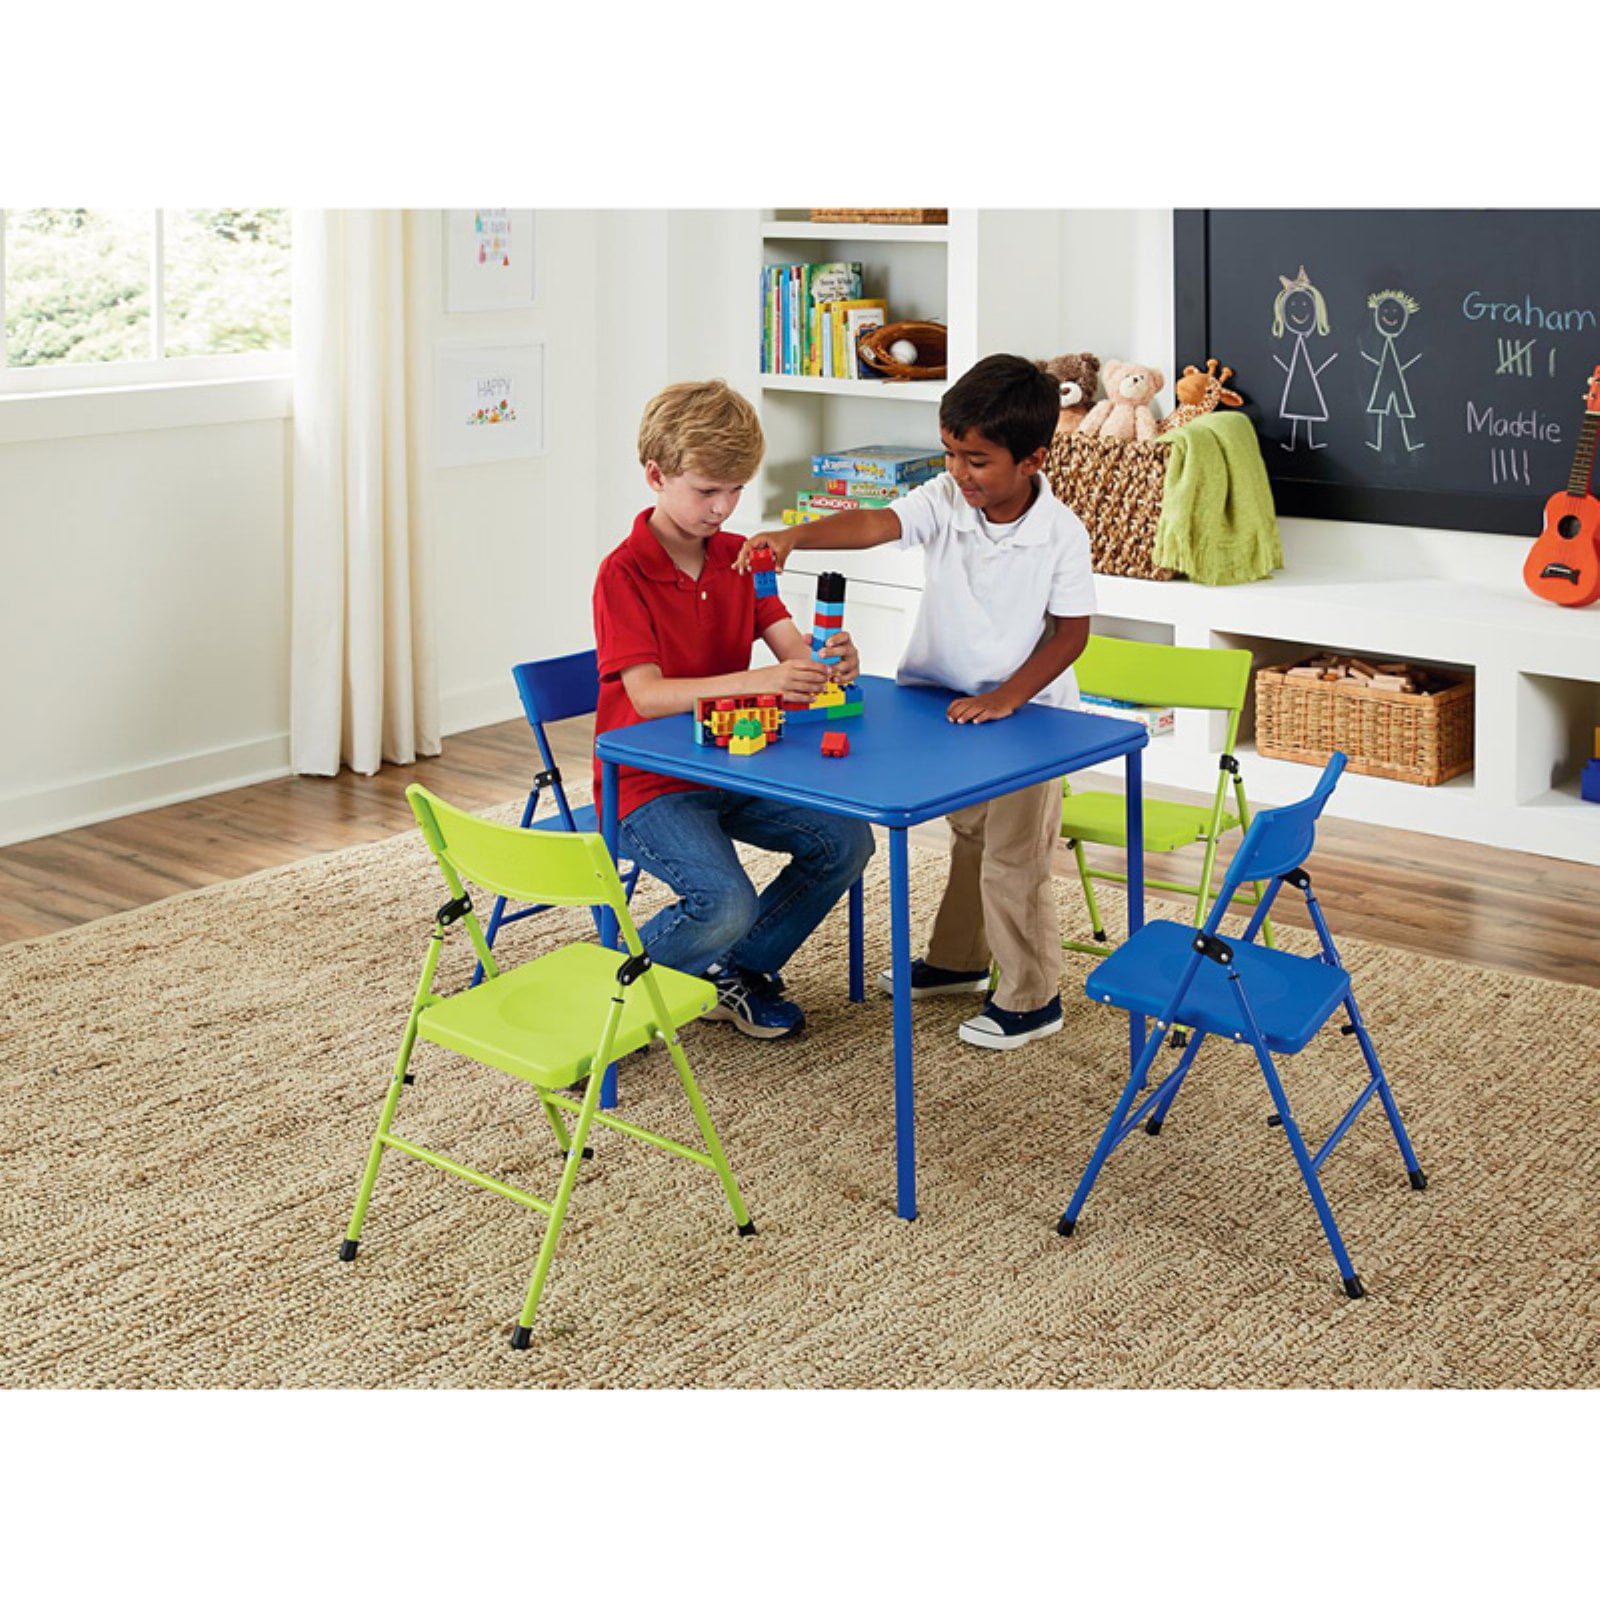 Cosco 5-Piece Kid\'s Table and Chair Set, Multiple Colors - Walmart.com